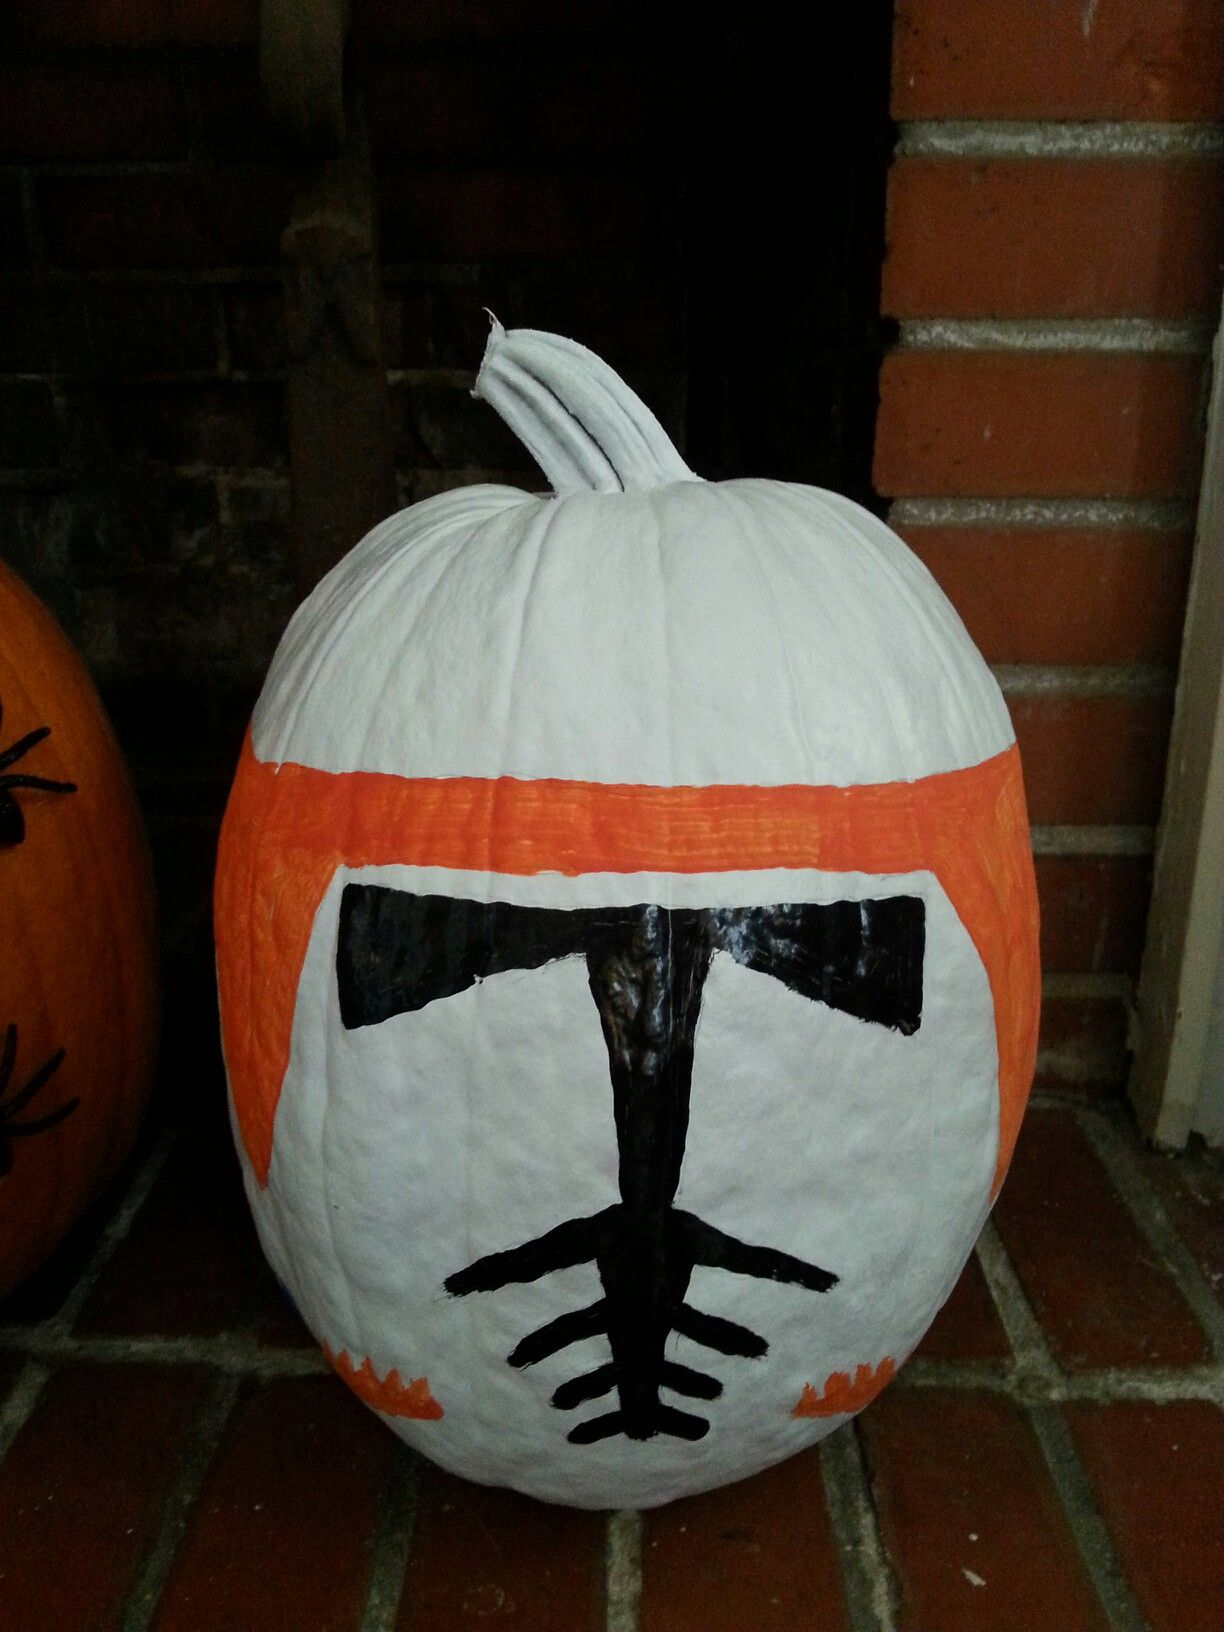 Commander Cody painted pumpkin Painted pumpkins